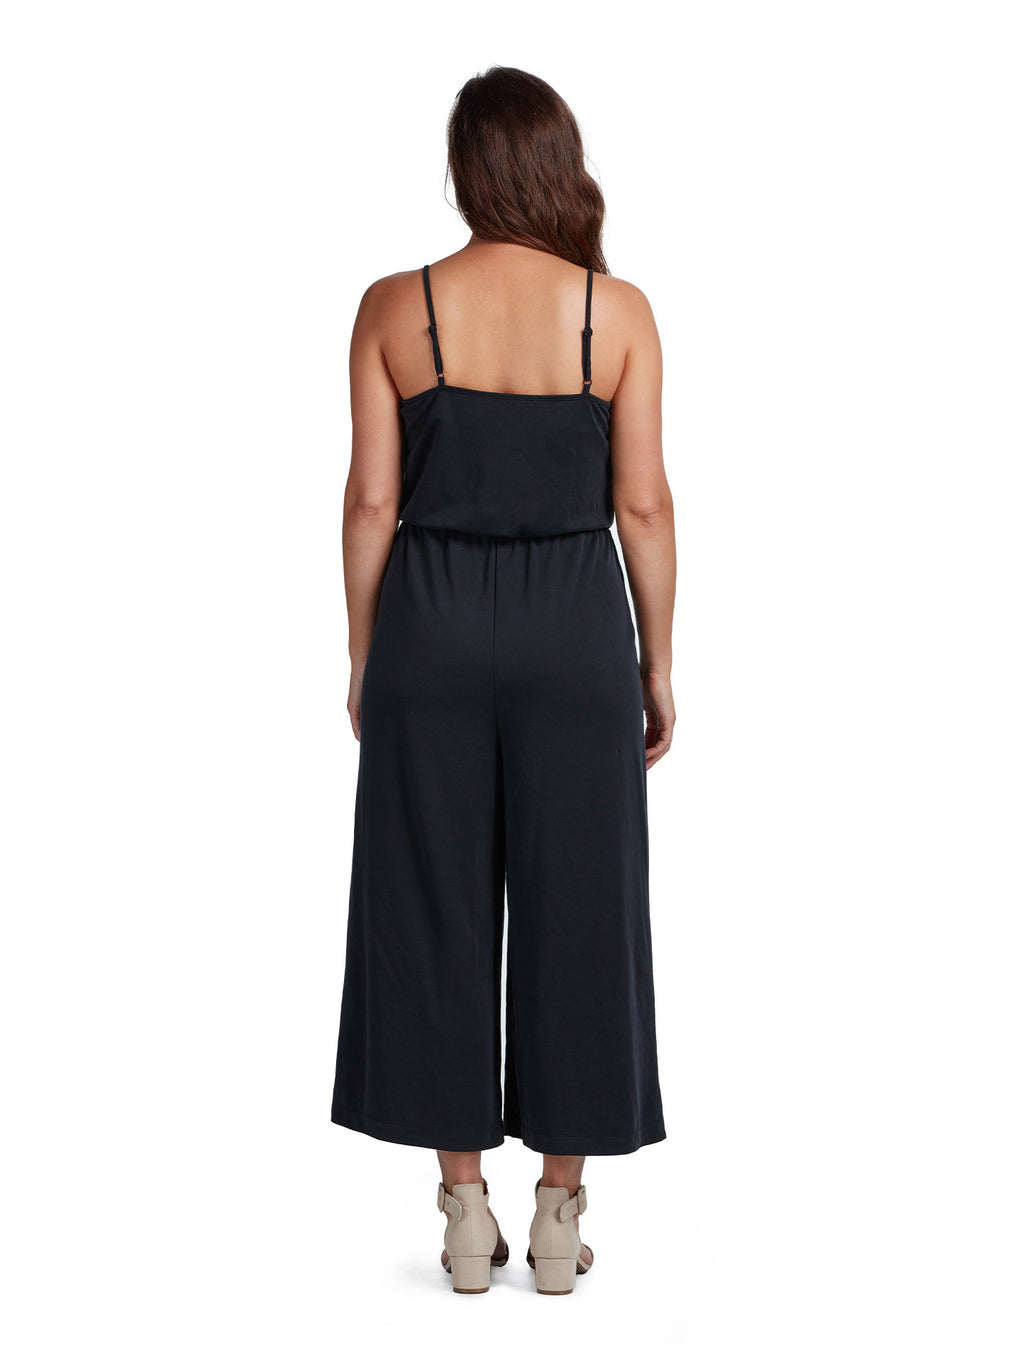 Women's Loose Wrap Jumpsuit - Espresso Black